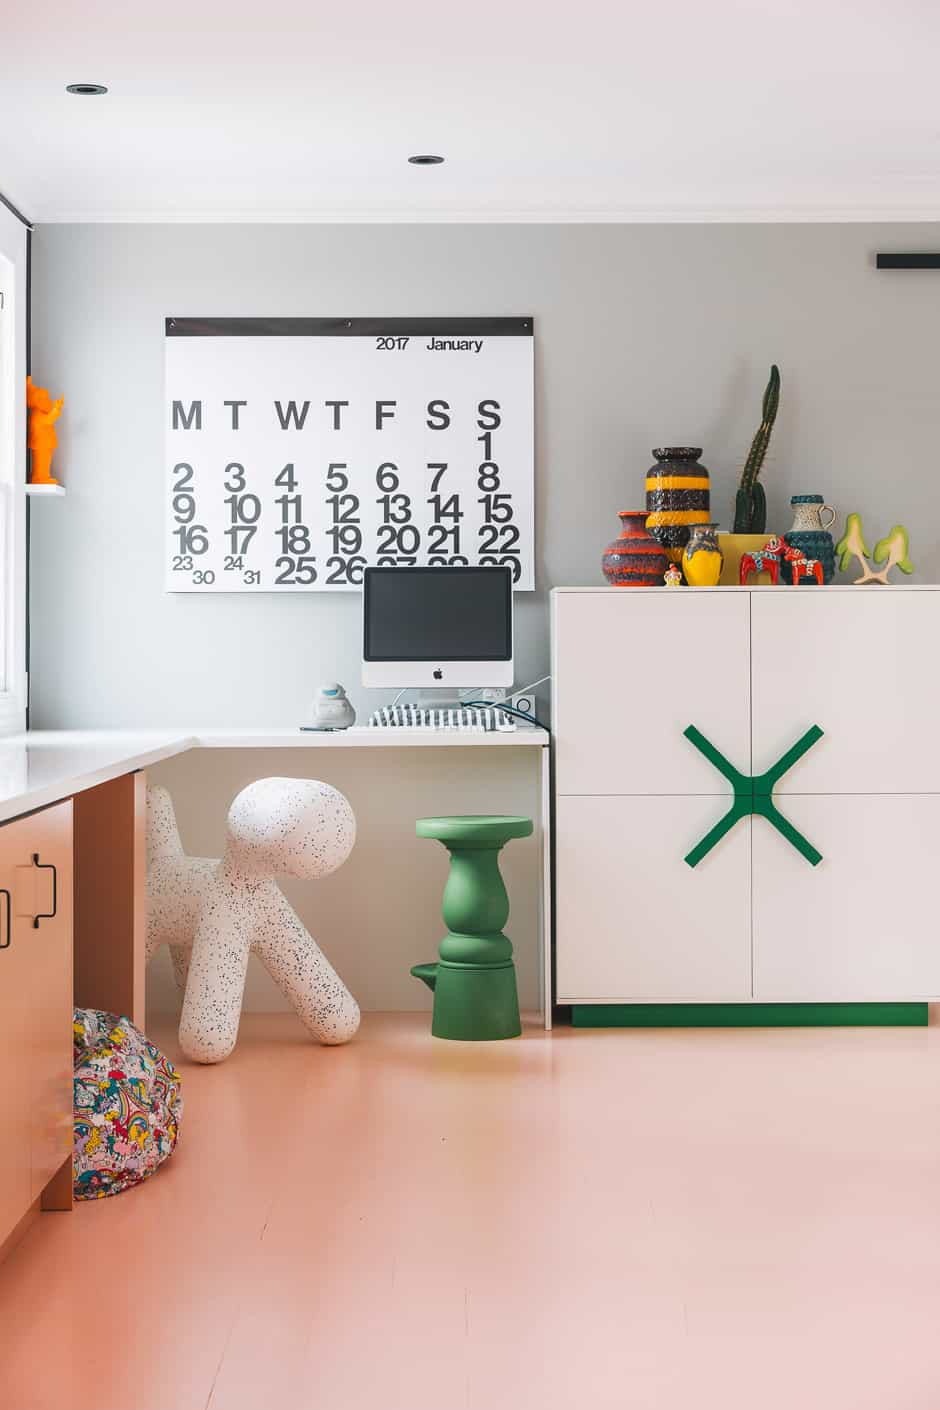 OPPOSITE West German pottery can also be found in the office, along with a beanbag from Kip & Co, a Puppy chair by Eero Aarnio for Magis and a cabinet by Karim Rashid for BoConcept.